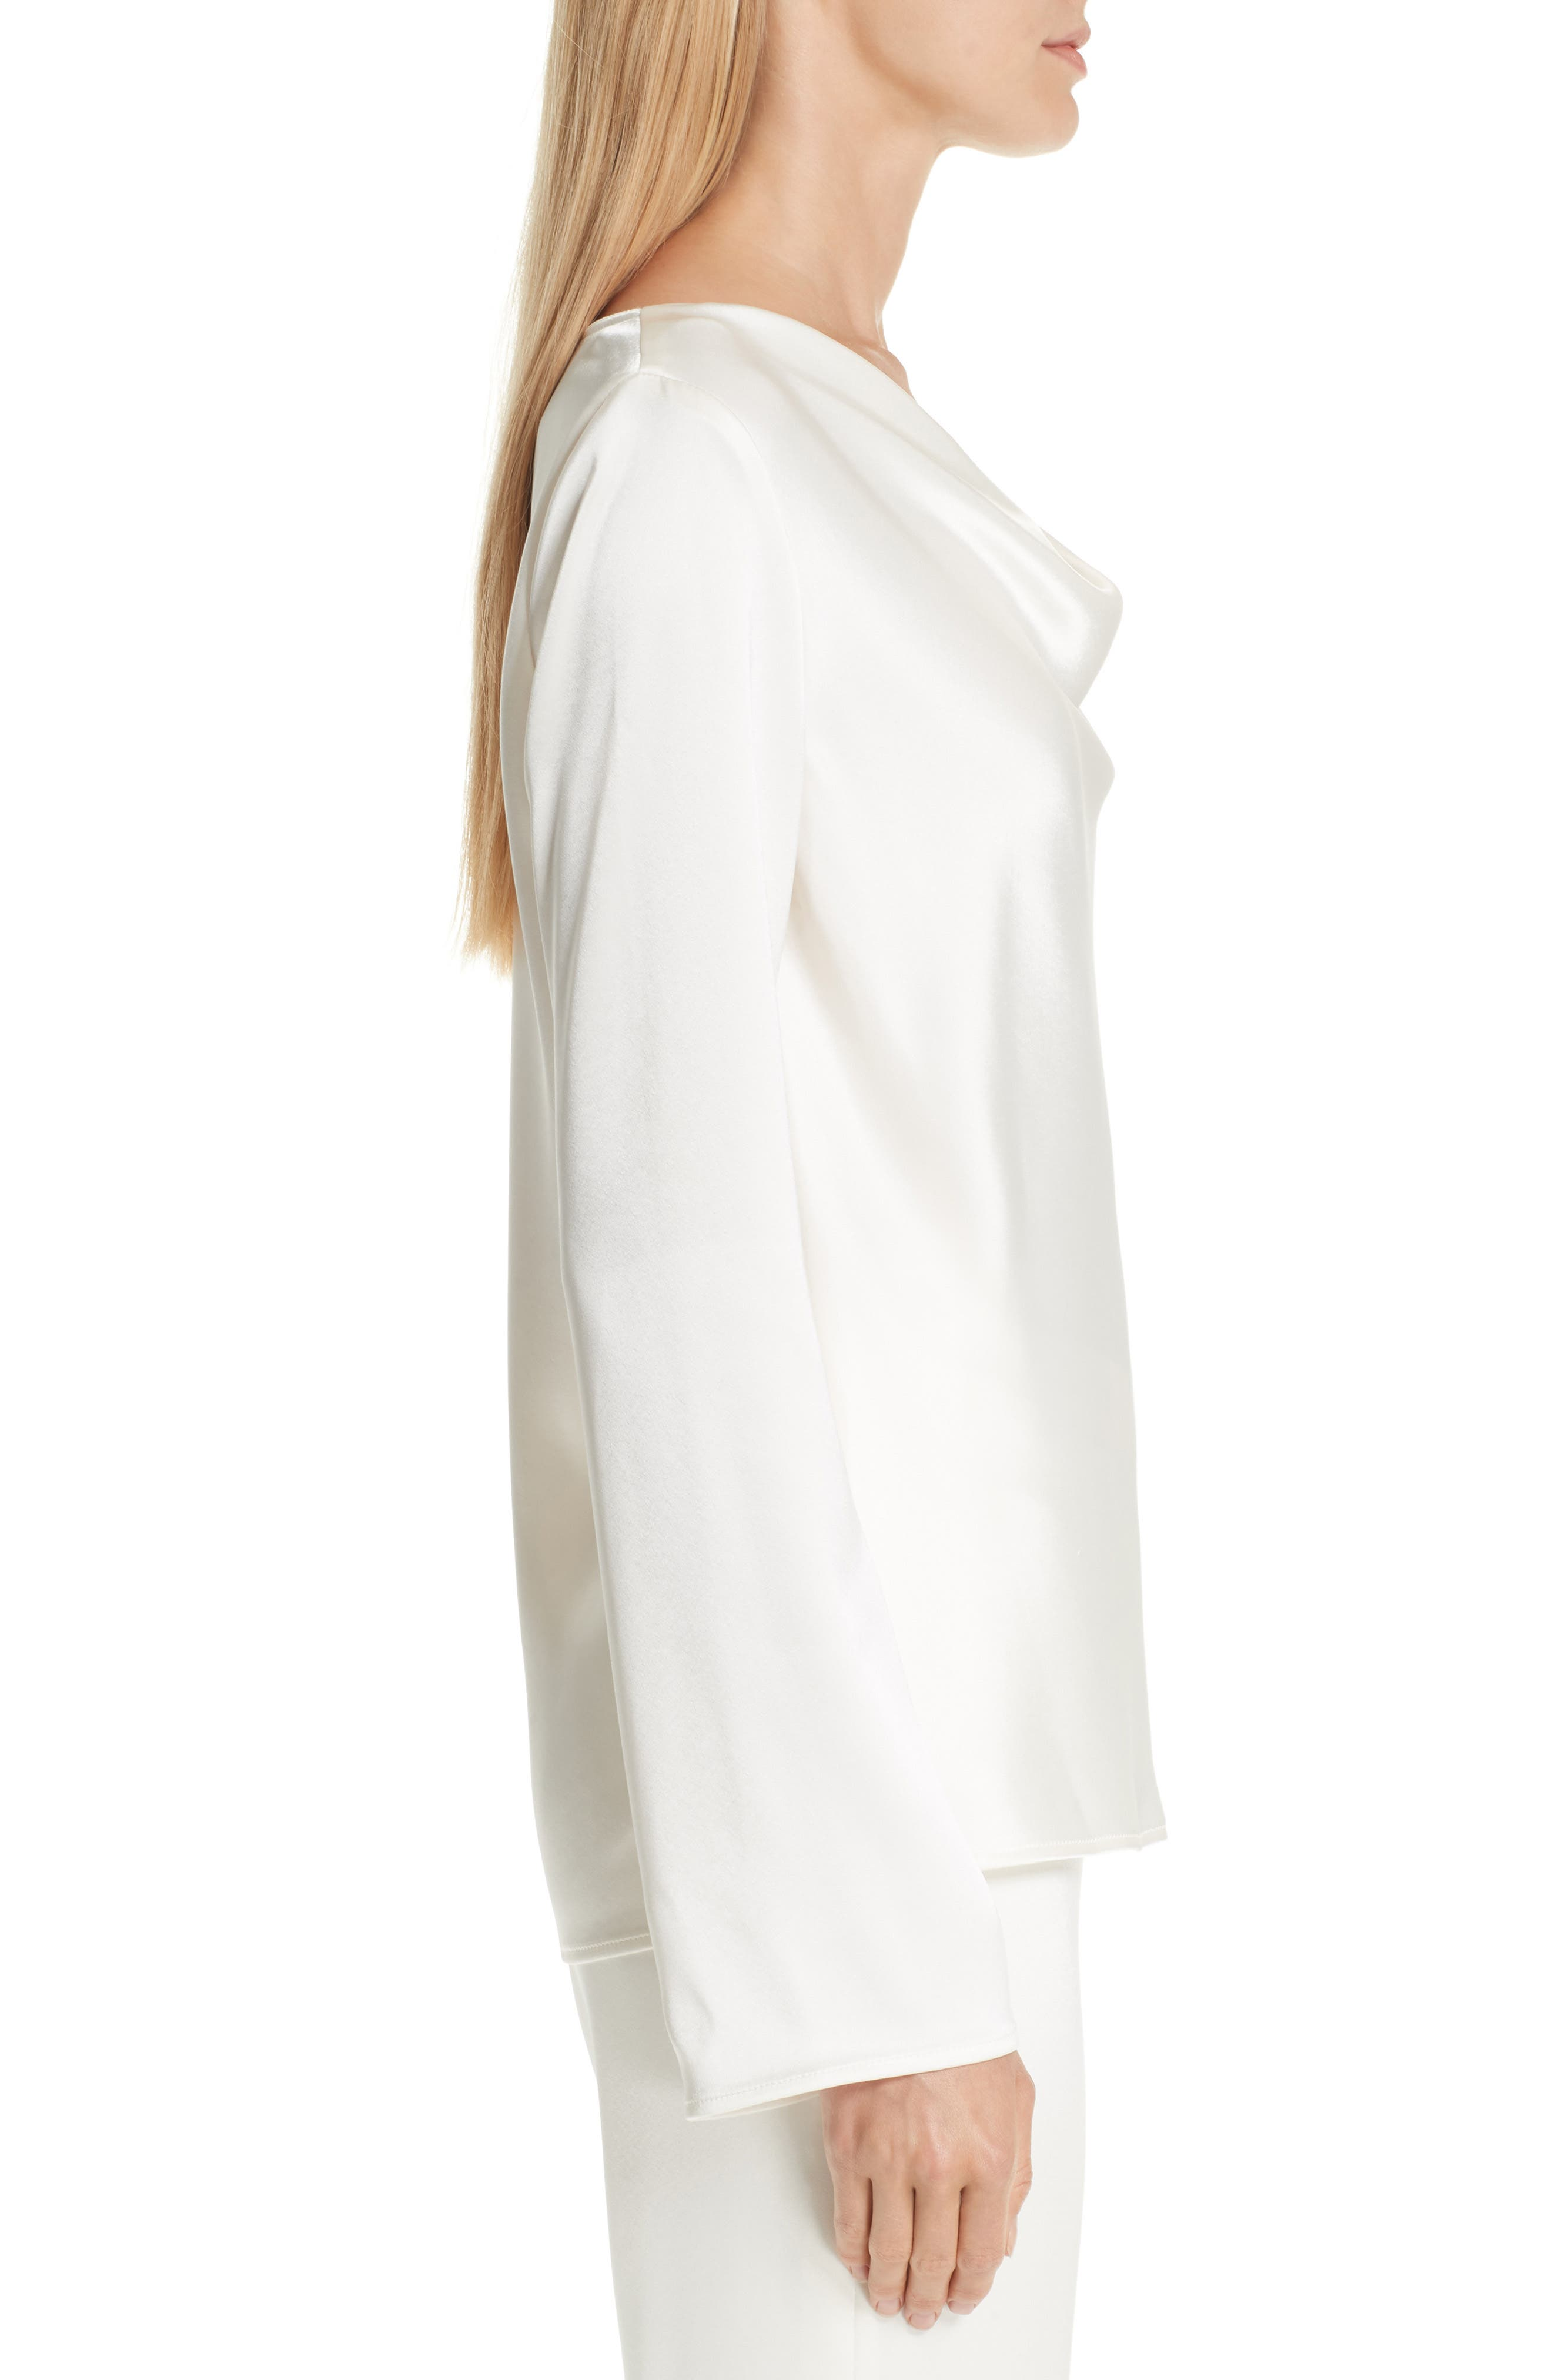 ST. JOHN COLLECTION,                             Satin Cowl Neck Blouse,                             Alternate thumbnail 3, color,                             CREAM